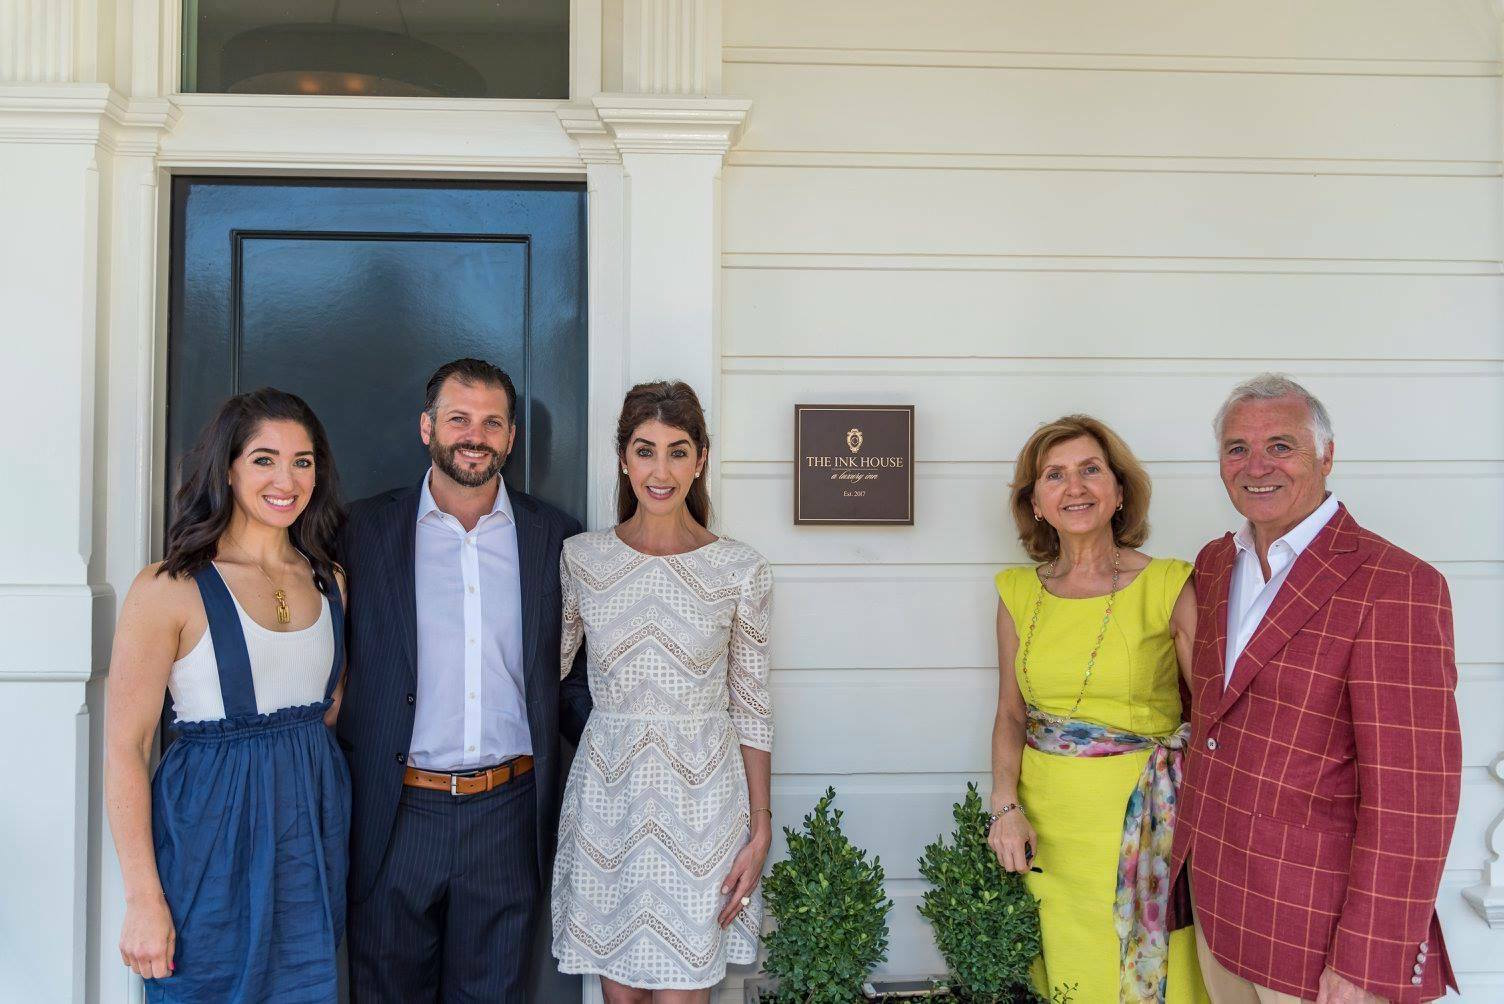 Antonio Castellucci, left, and his family, from left to right: Angela Longyear, Marco Castellucci, Maria Castellucci, and Rita Castellucci,